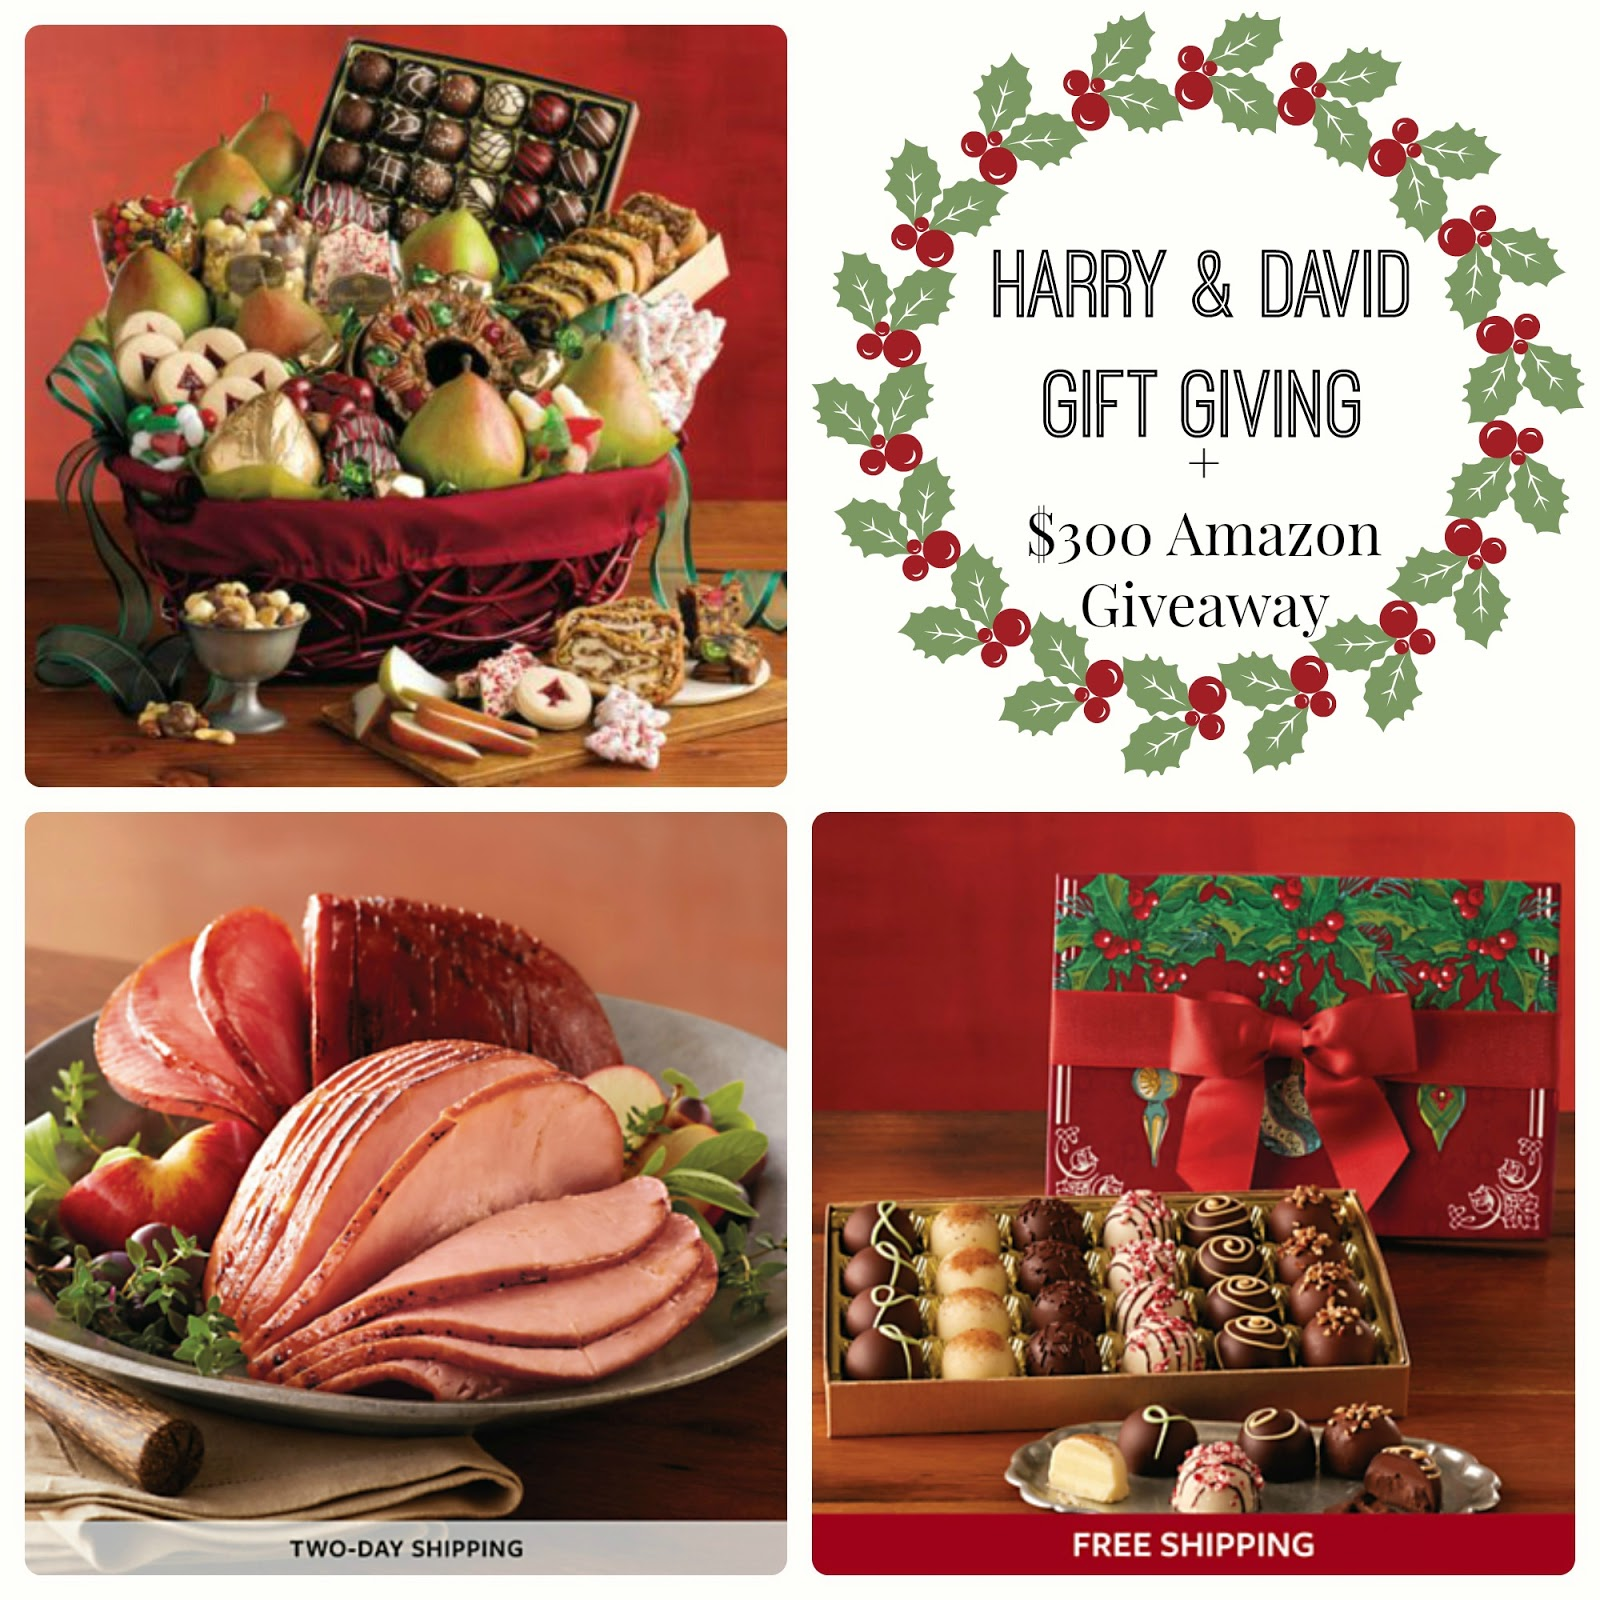 Harry & David Coupons.com Help with The Holidays